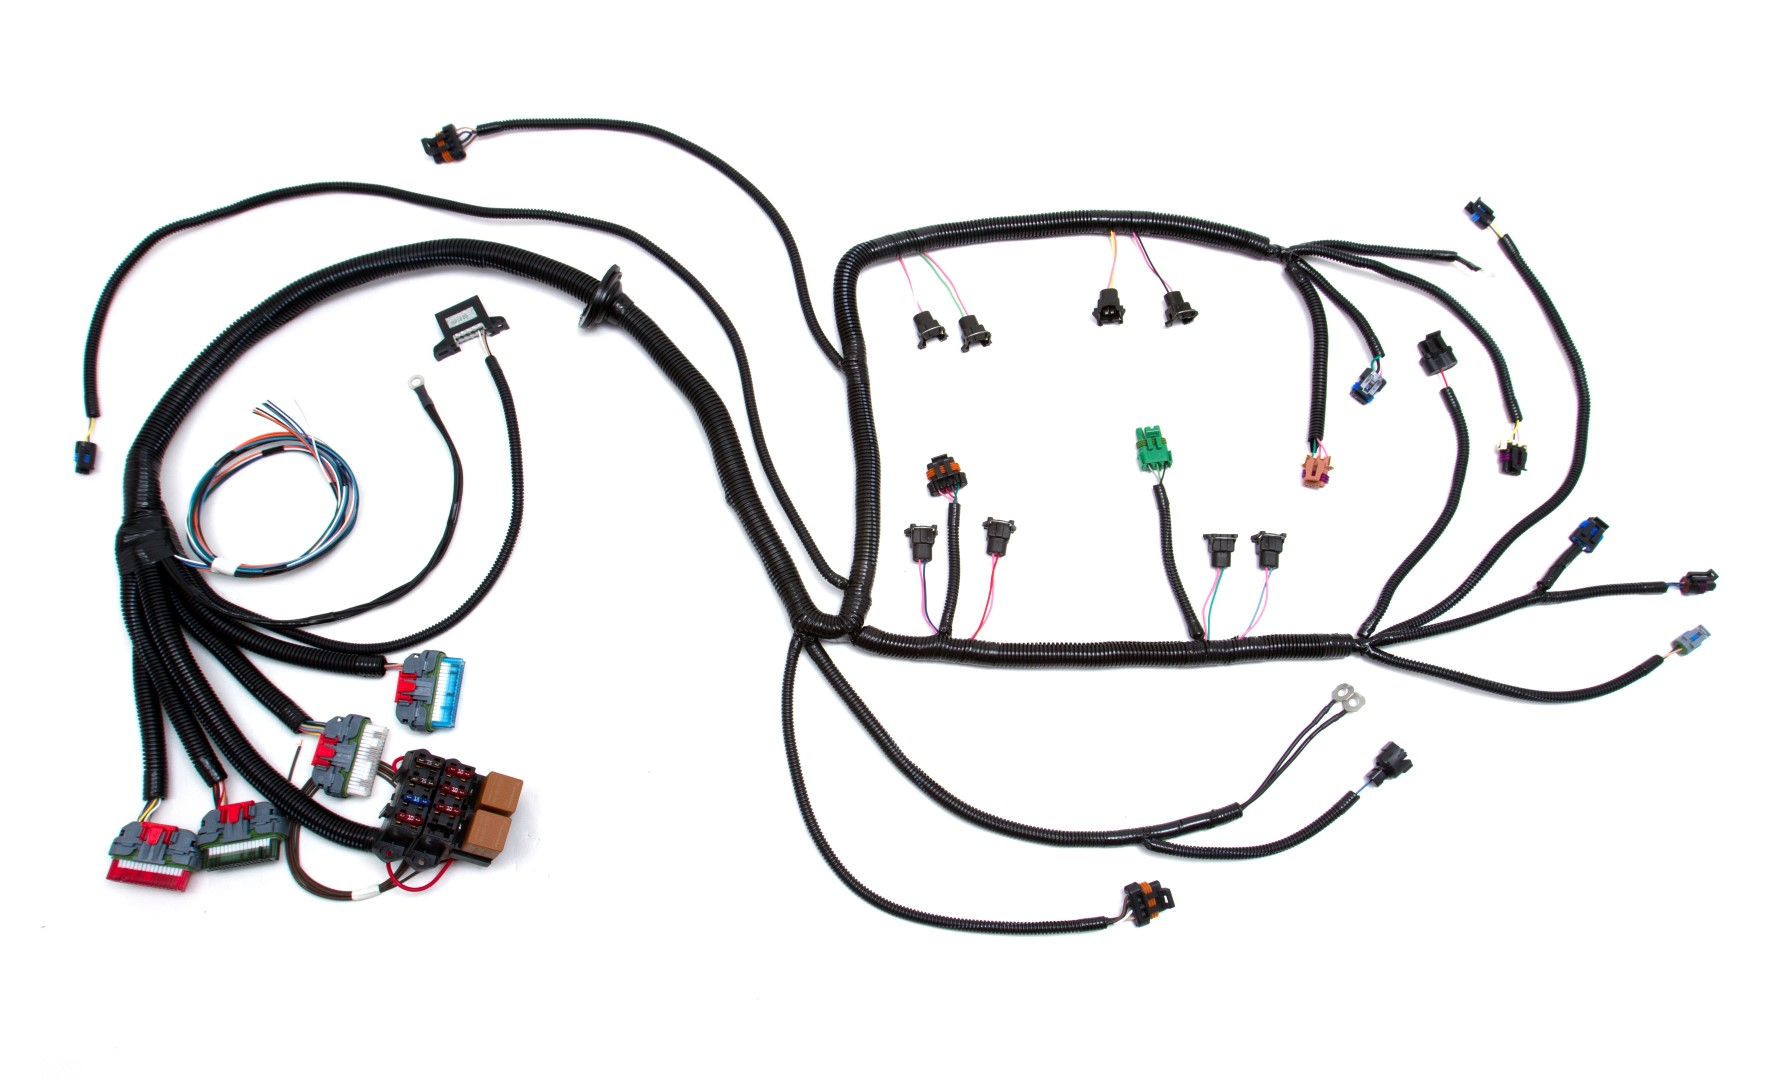 Standalone Wiring Harness Lt1 700r4 For Sale Opinions About Diagram Psi Lt4 W T56 Th350 Th400 Rh Psiconversion Com Ls1 In